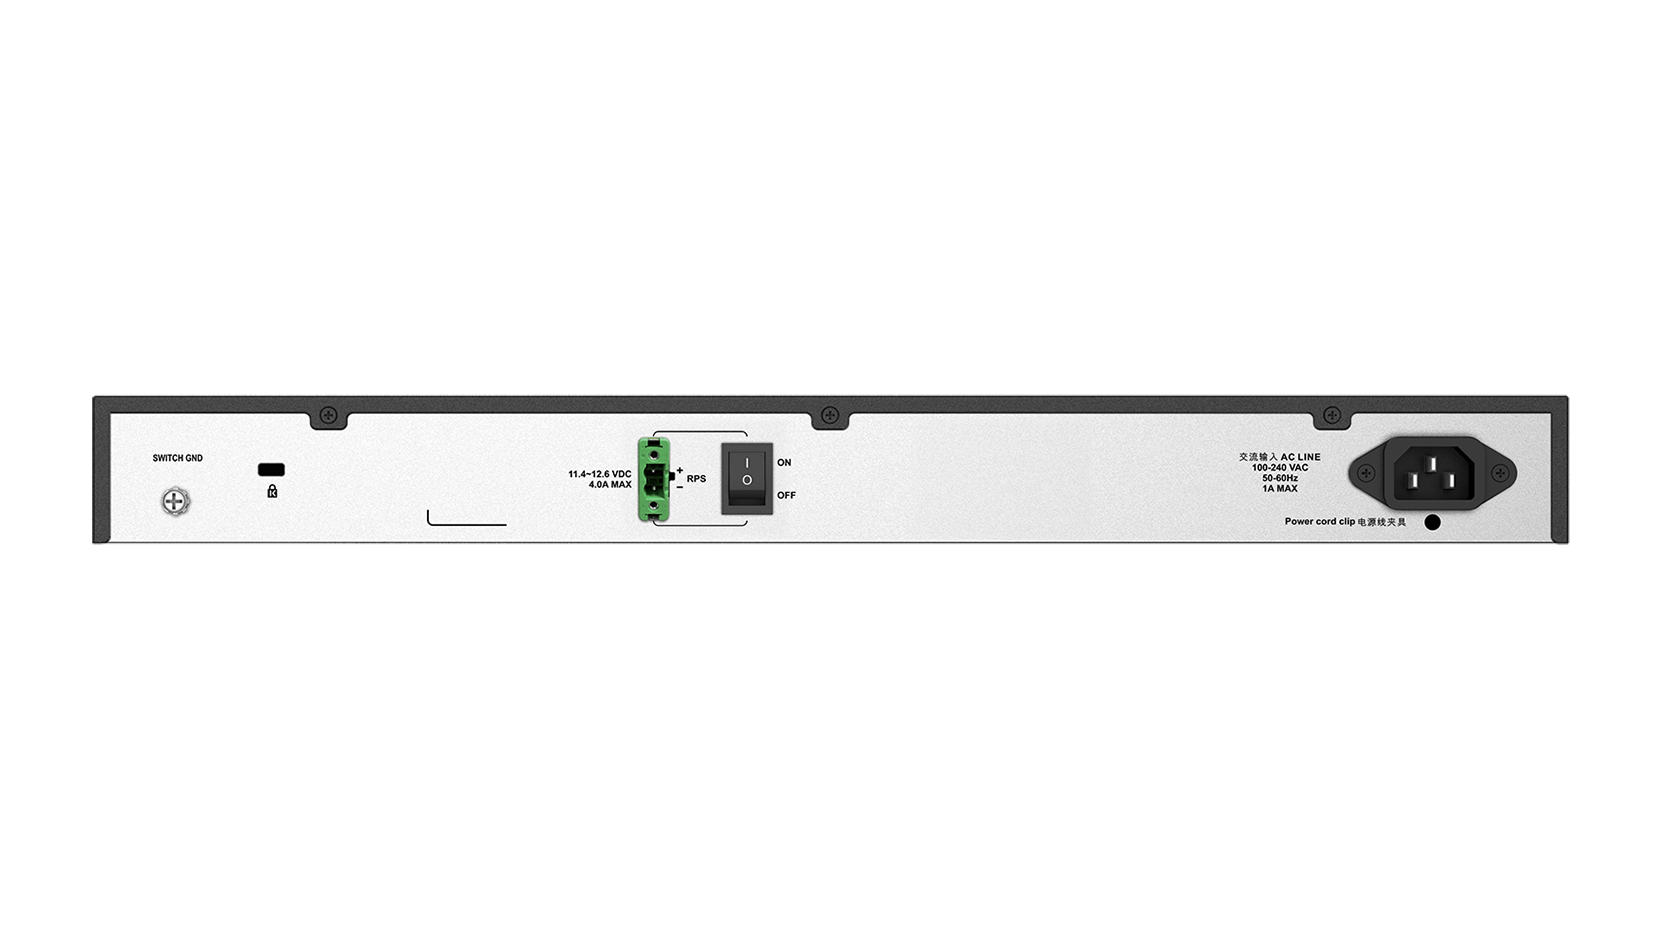 DGS-3000-52X Gigabit L2 Managed Switch